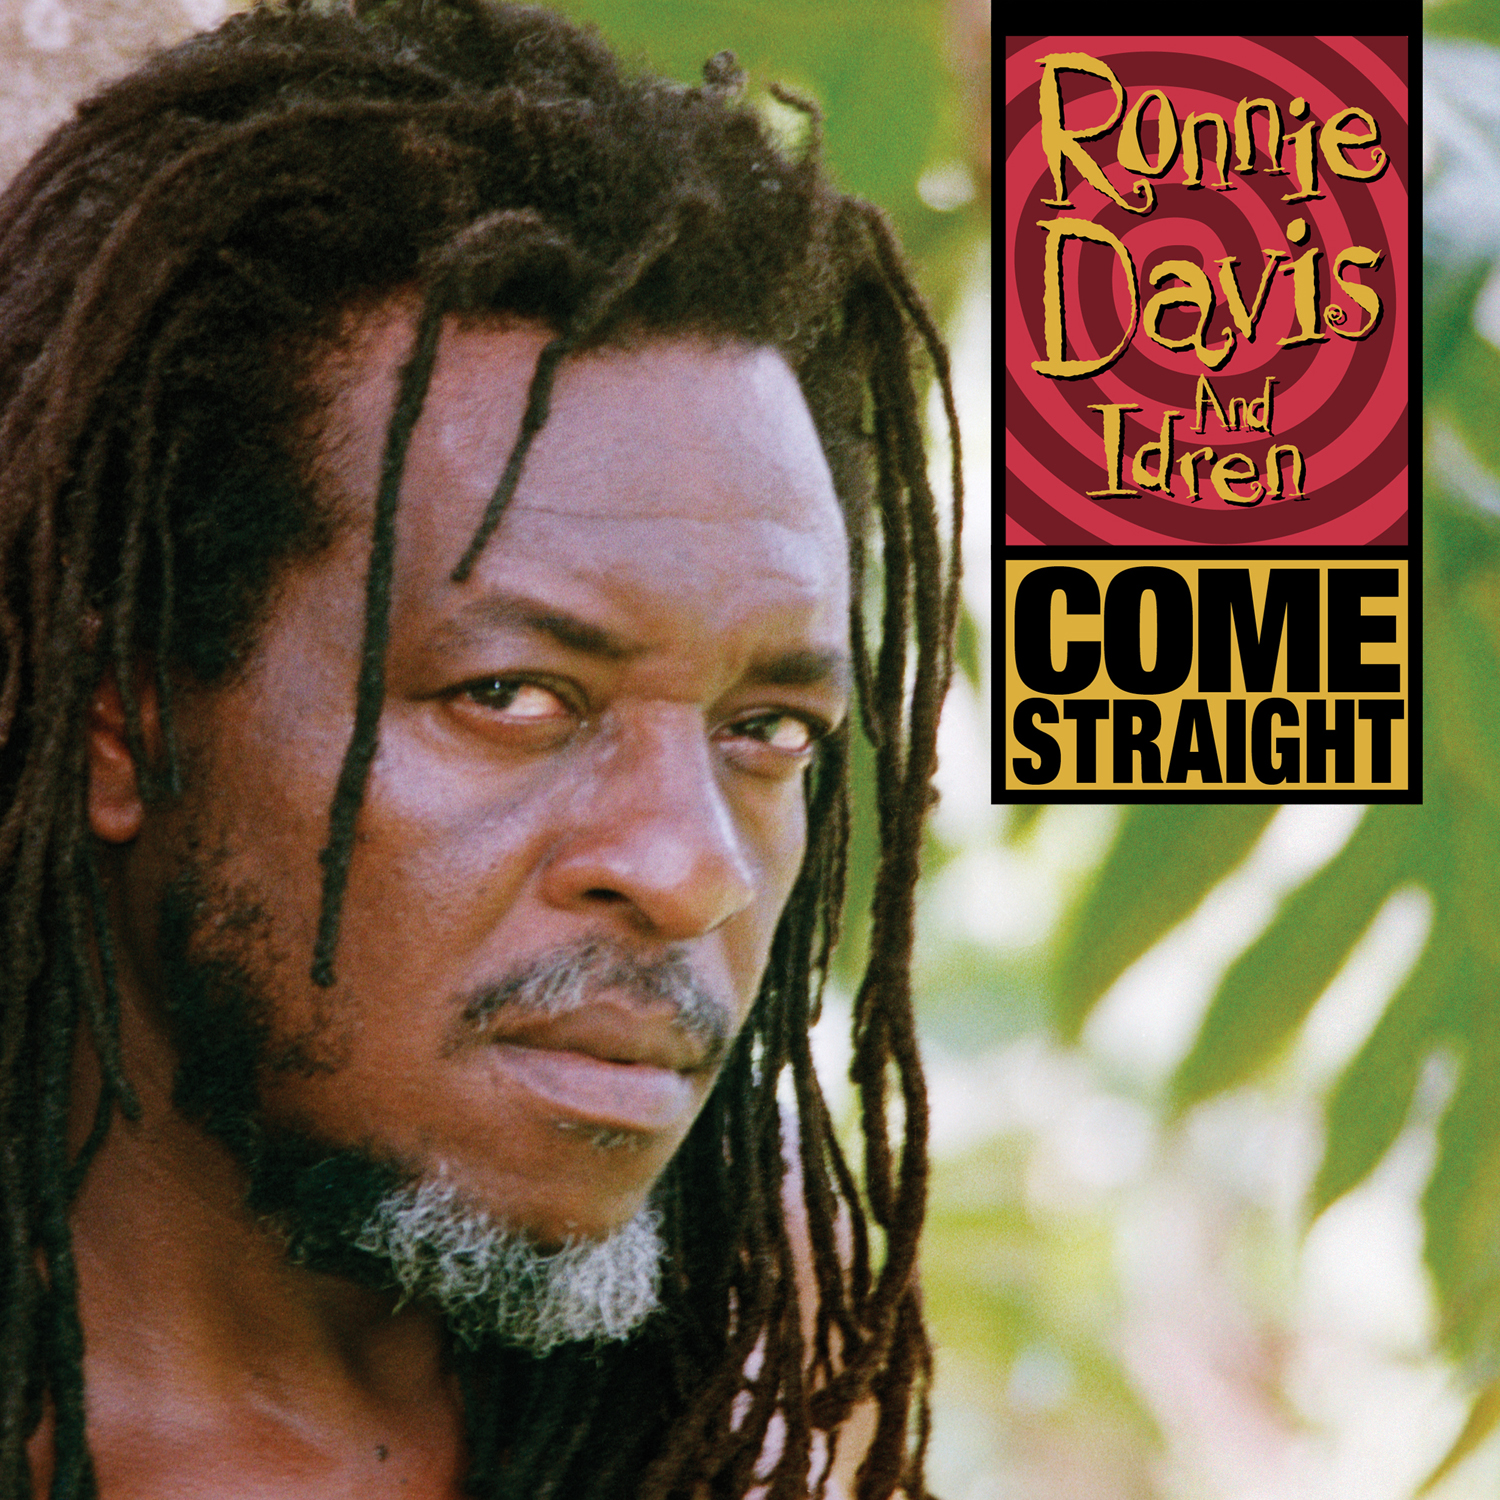 Ronnie Davis And Idren - Come Straight  Release Date: August 3, 2018 Label: Omnivore Recordings  SERVICE: Mastering NUMBER OF DISCS: 1 GENRE: Reggae FORMAT: CD